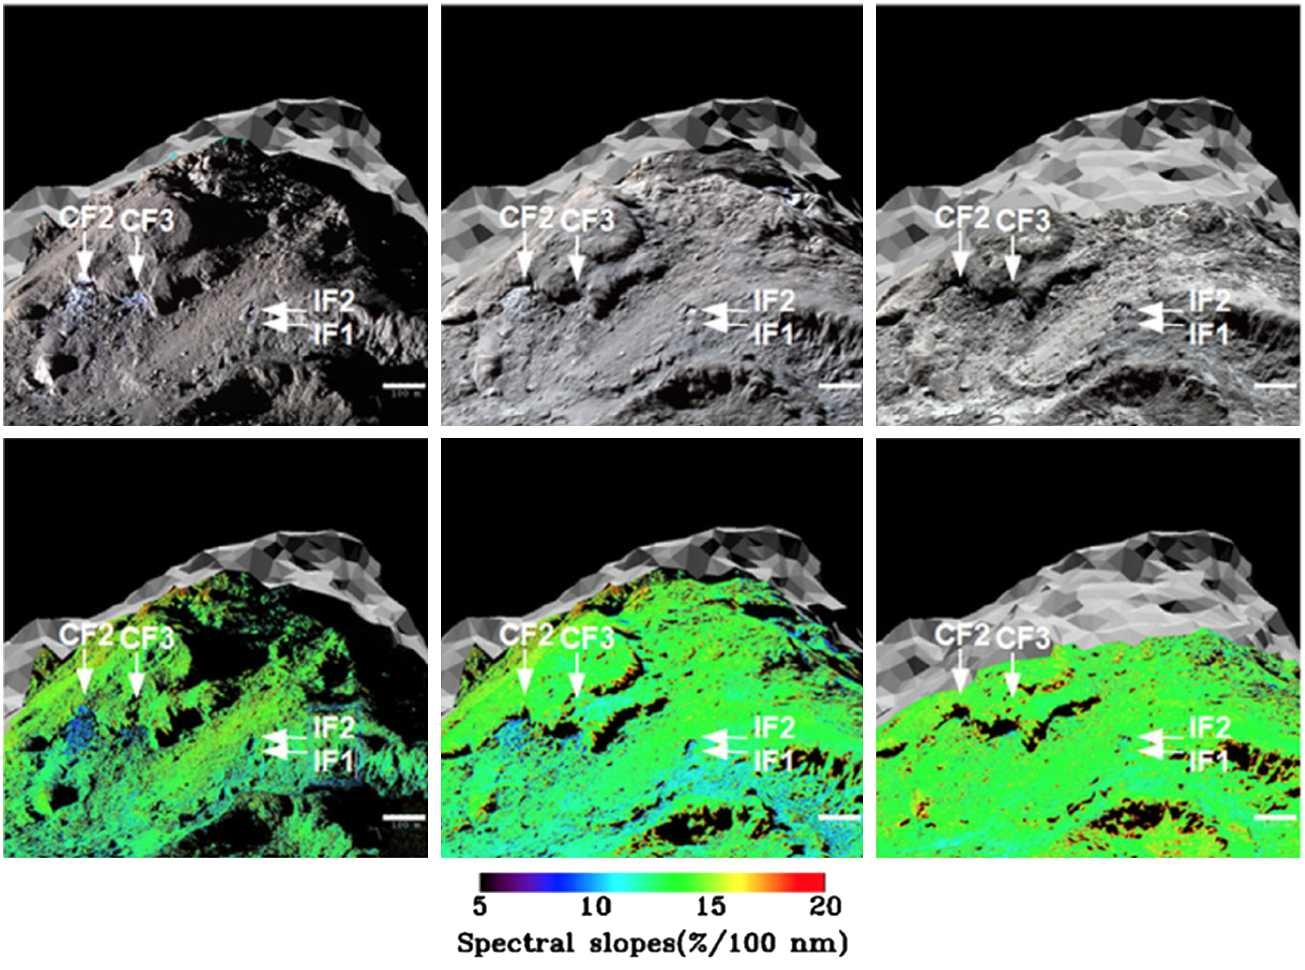 Comet 67P/CG Nucleus Composition and Comparison to Other